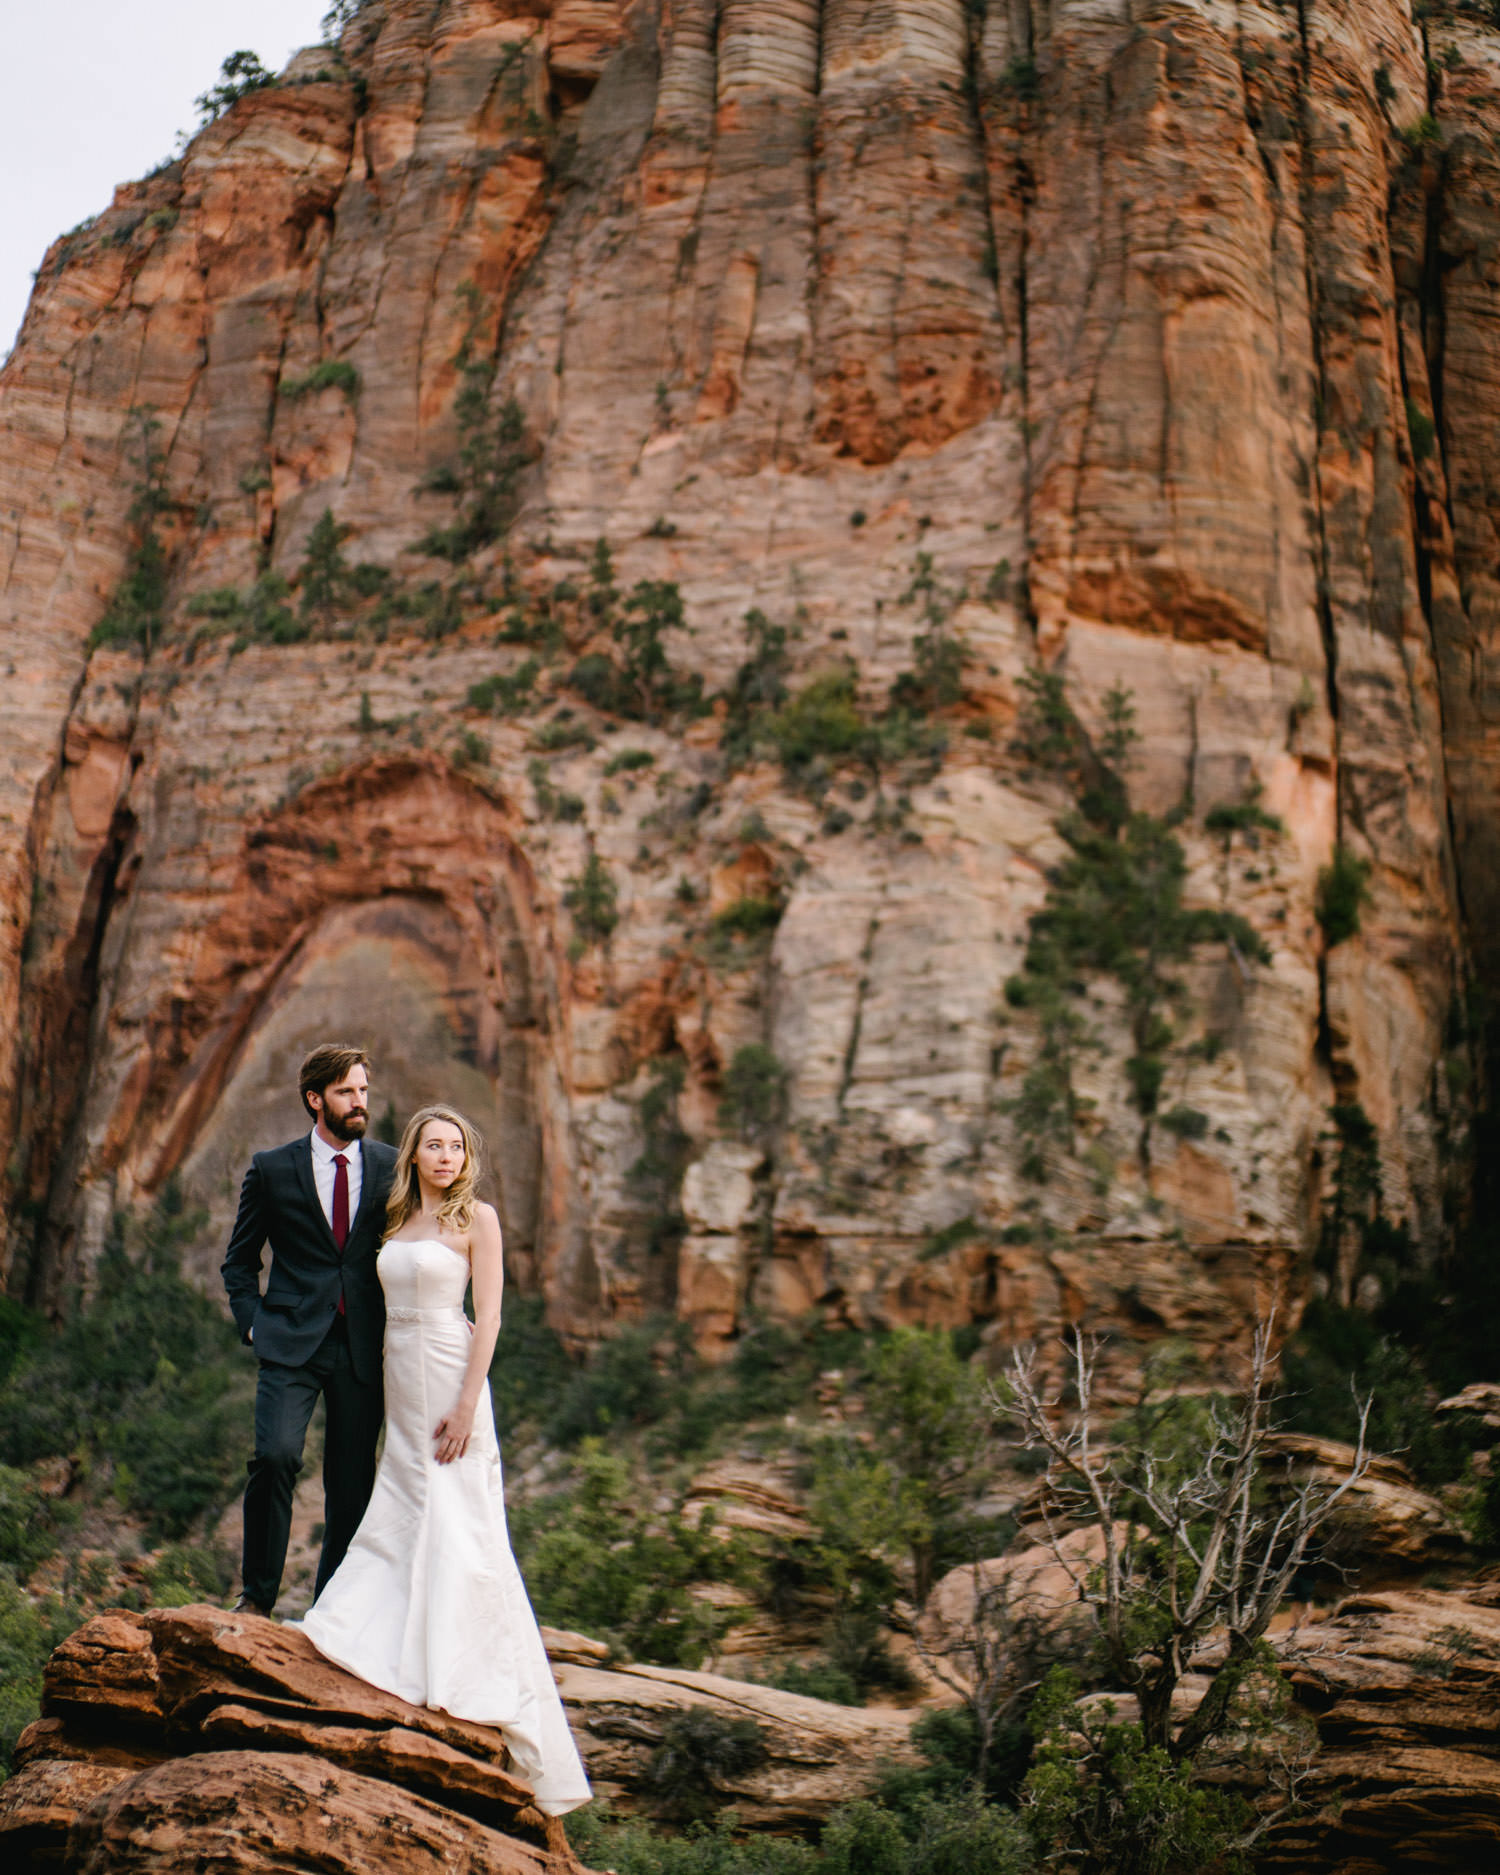 zionnationalpark_utah_destinationweddingphotographer_austendiamondphotography-7